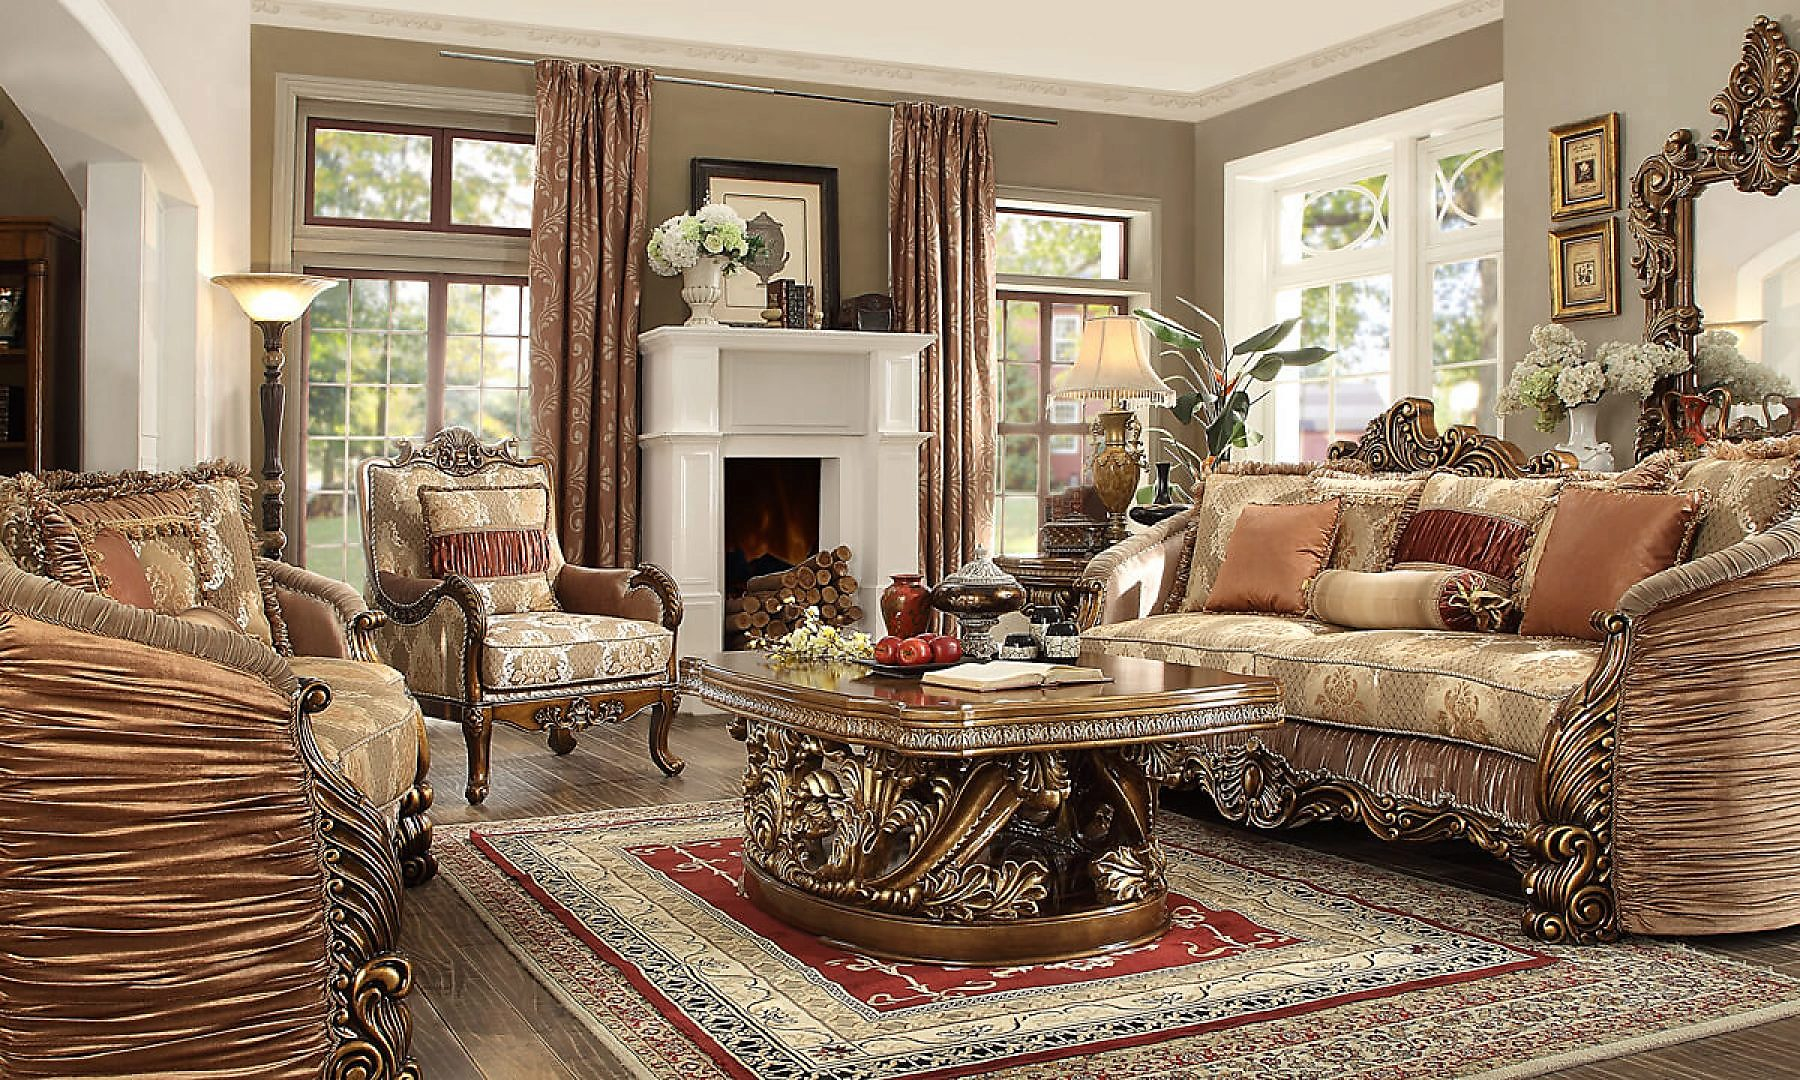 Traditional Living Room Set 3 PCS in Brown Fabric Traditional Style Homey Design HD-1601